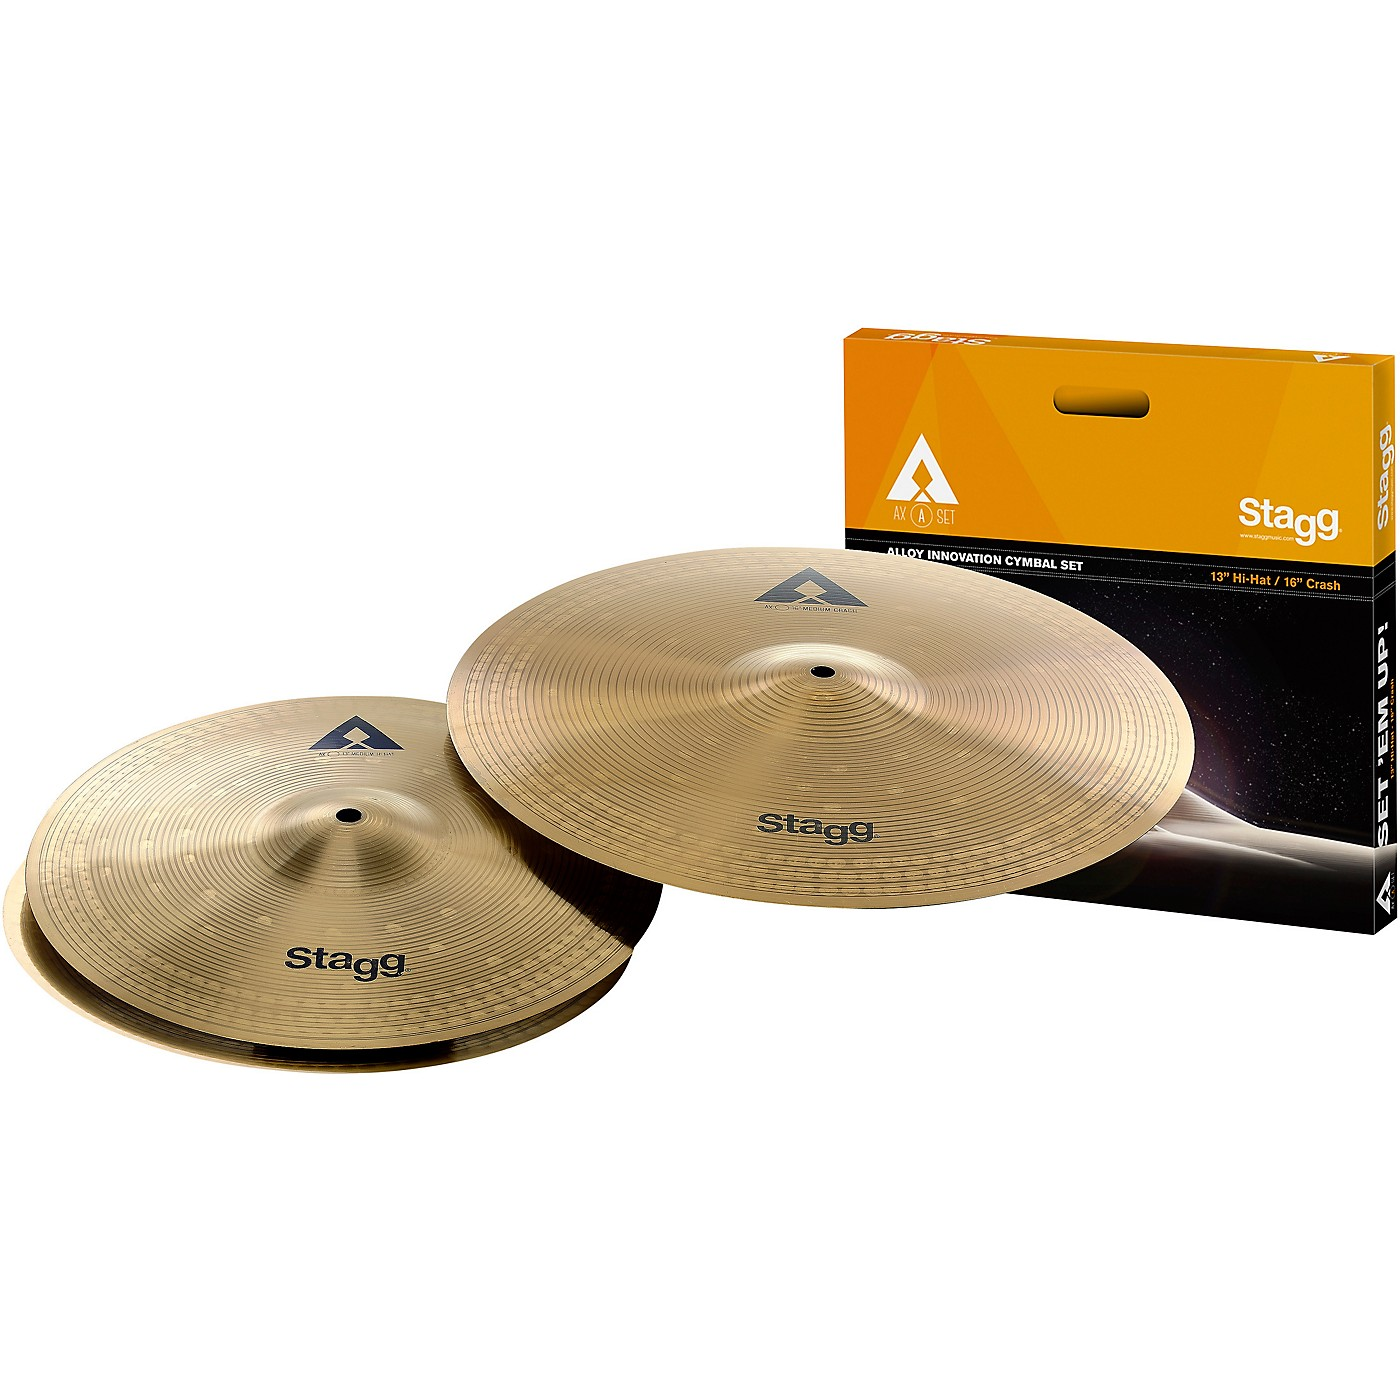 Stagg AX Series Copper-Steel Alloy Innovation Cymbal Set thumbnail